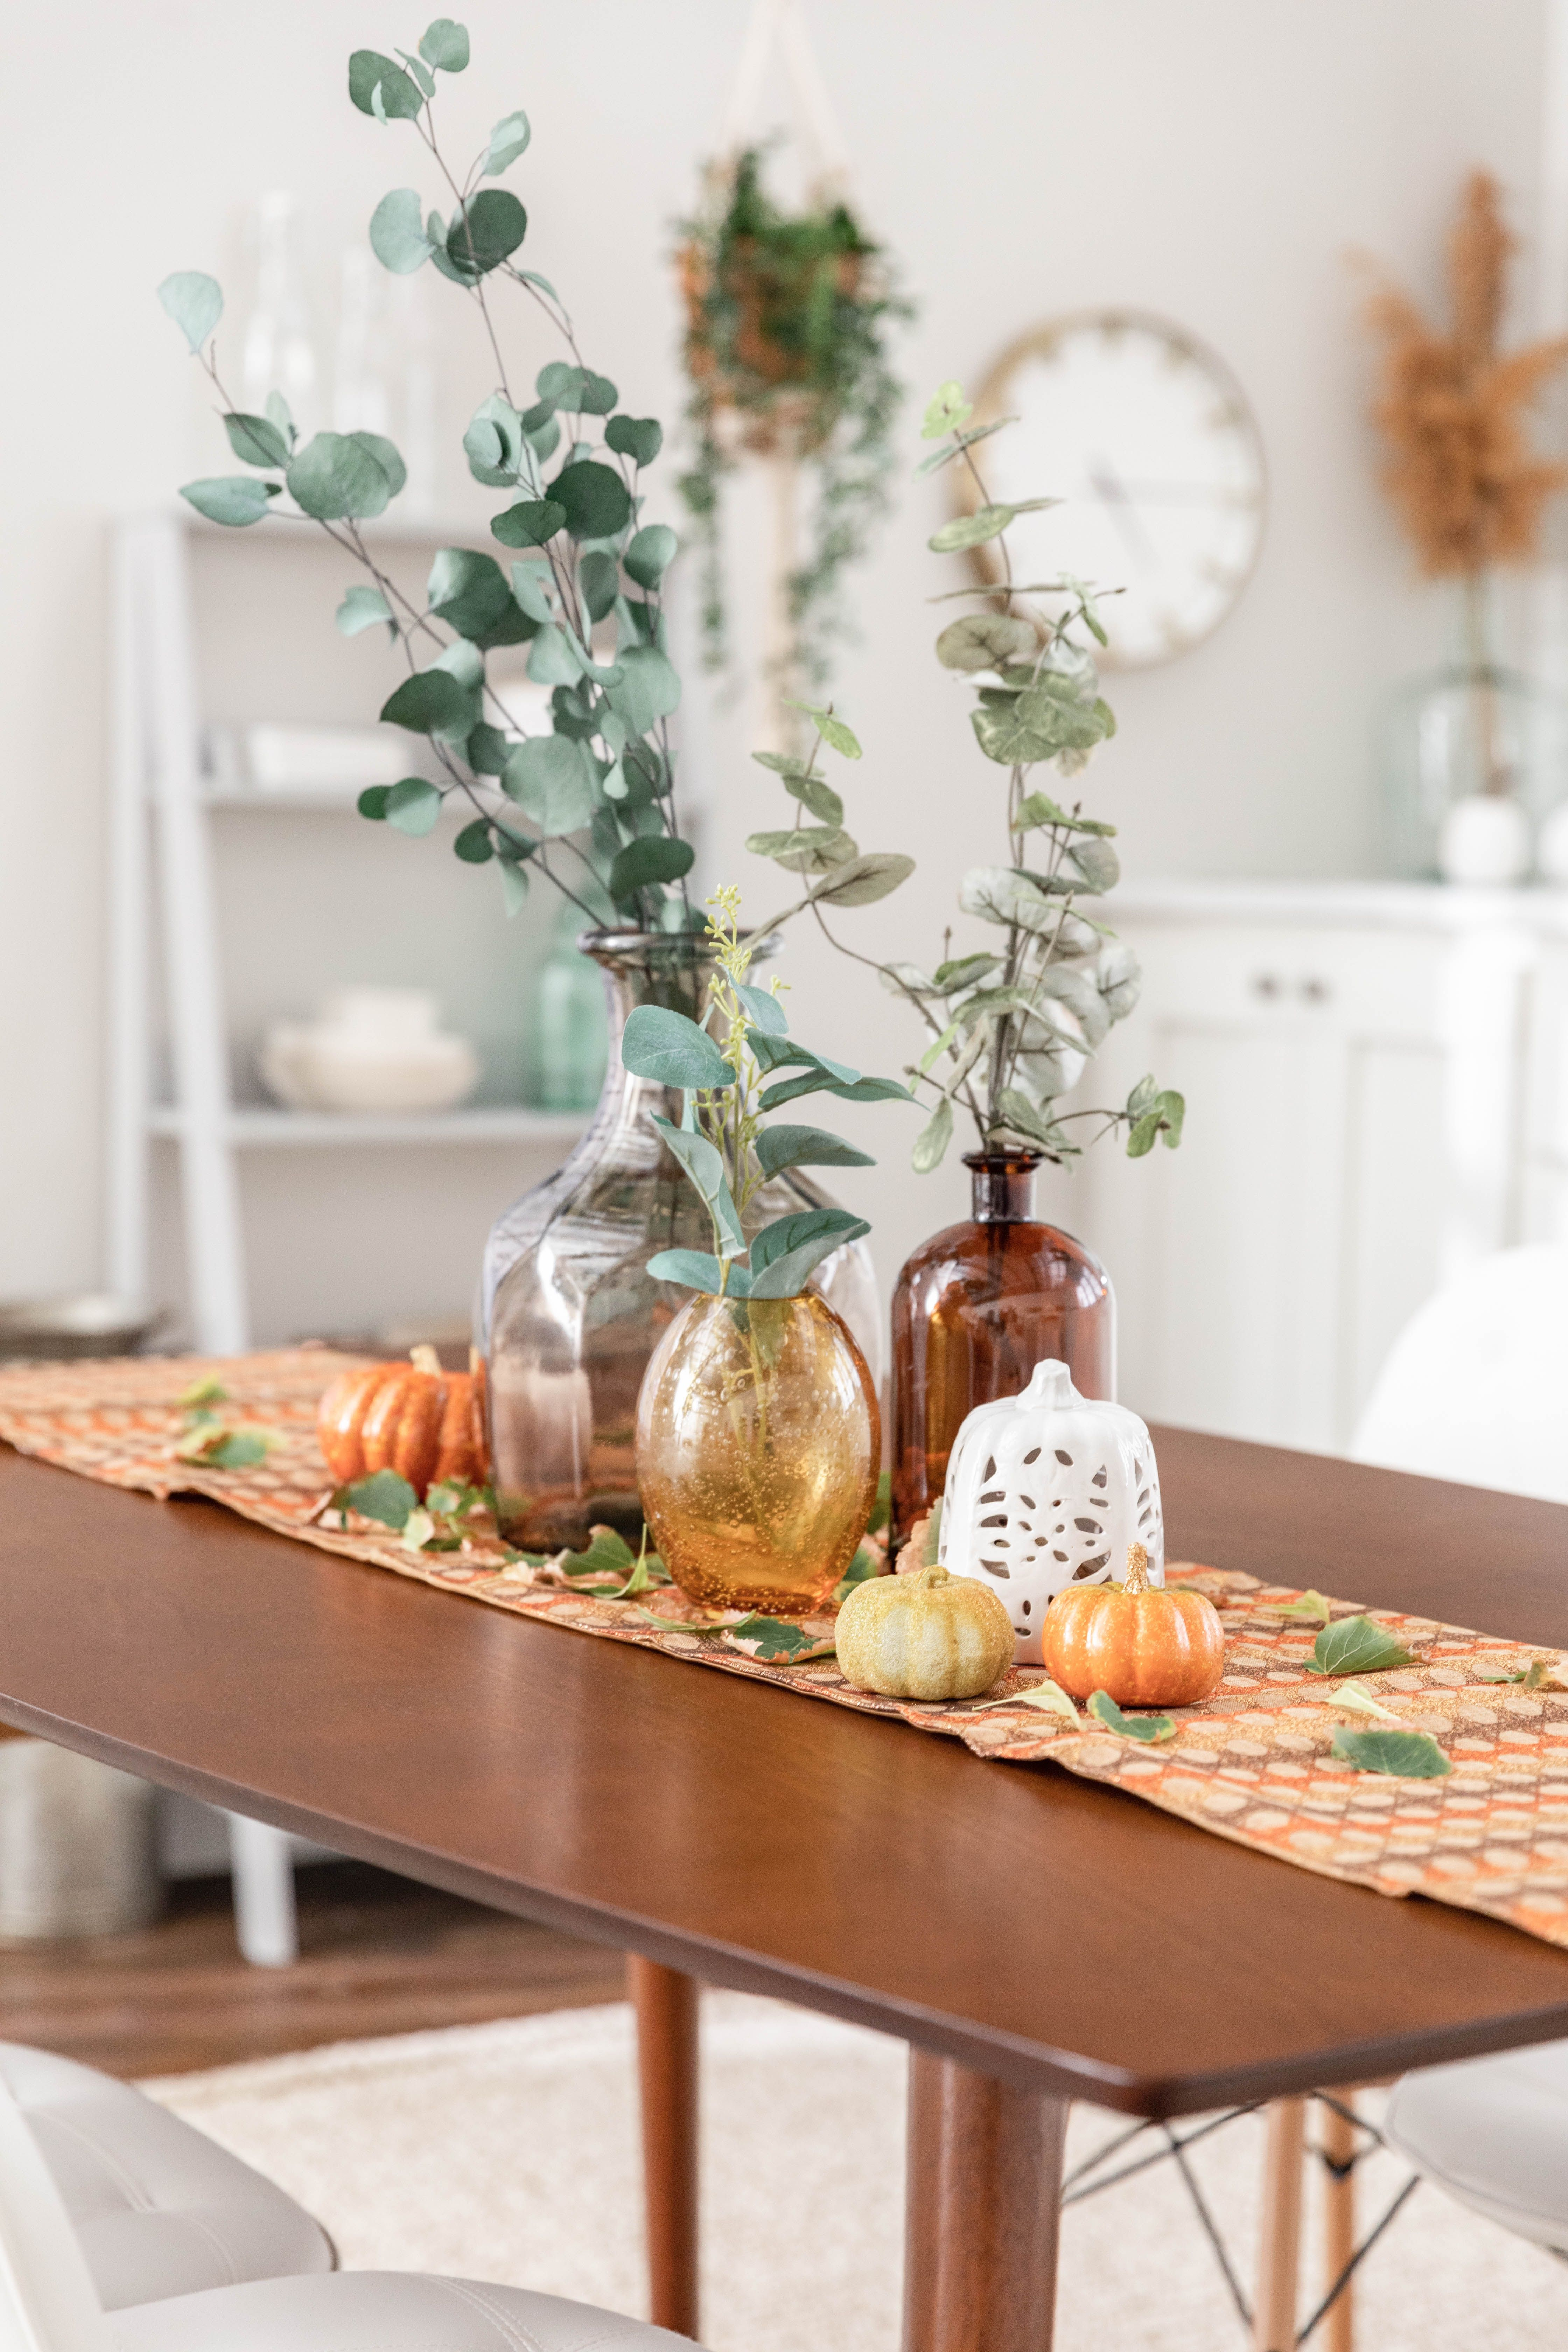 Mid Century Dining Table Dining Table Decor Centerpiece Fall Dining Table Decor Fall Dining Table